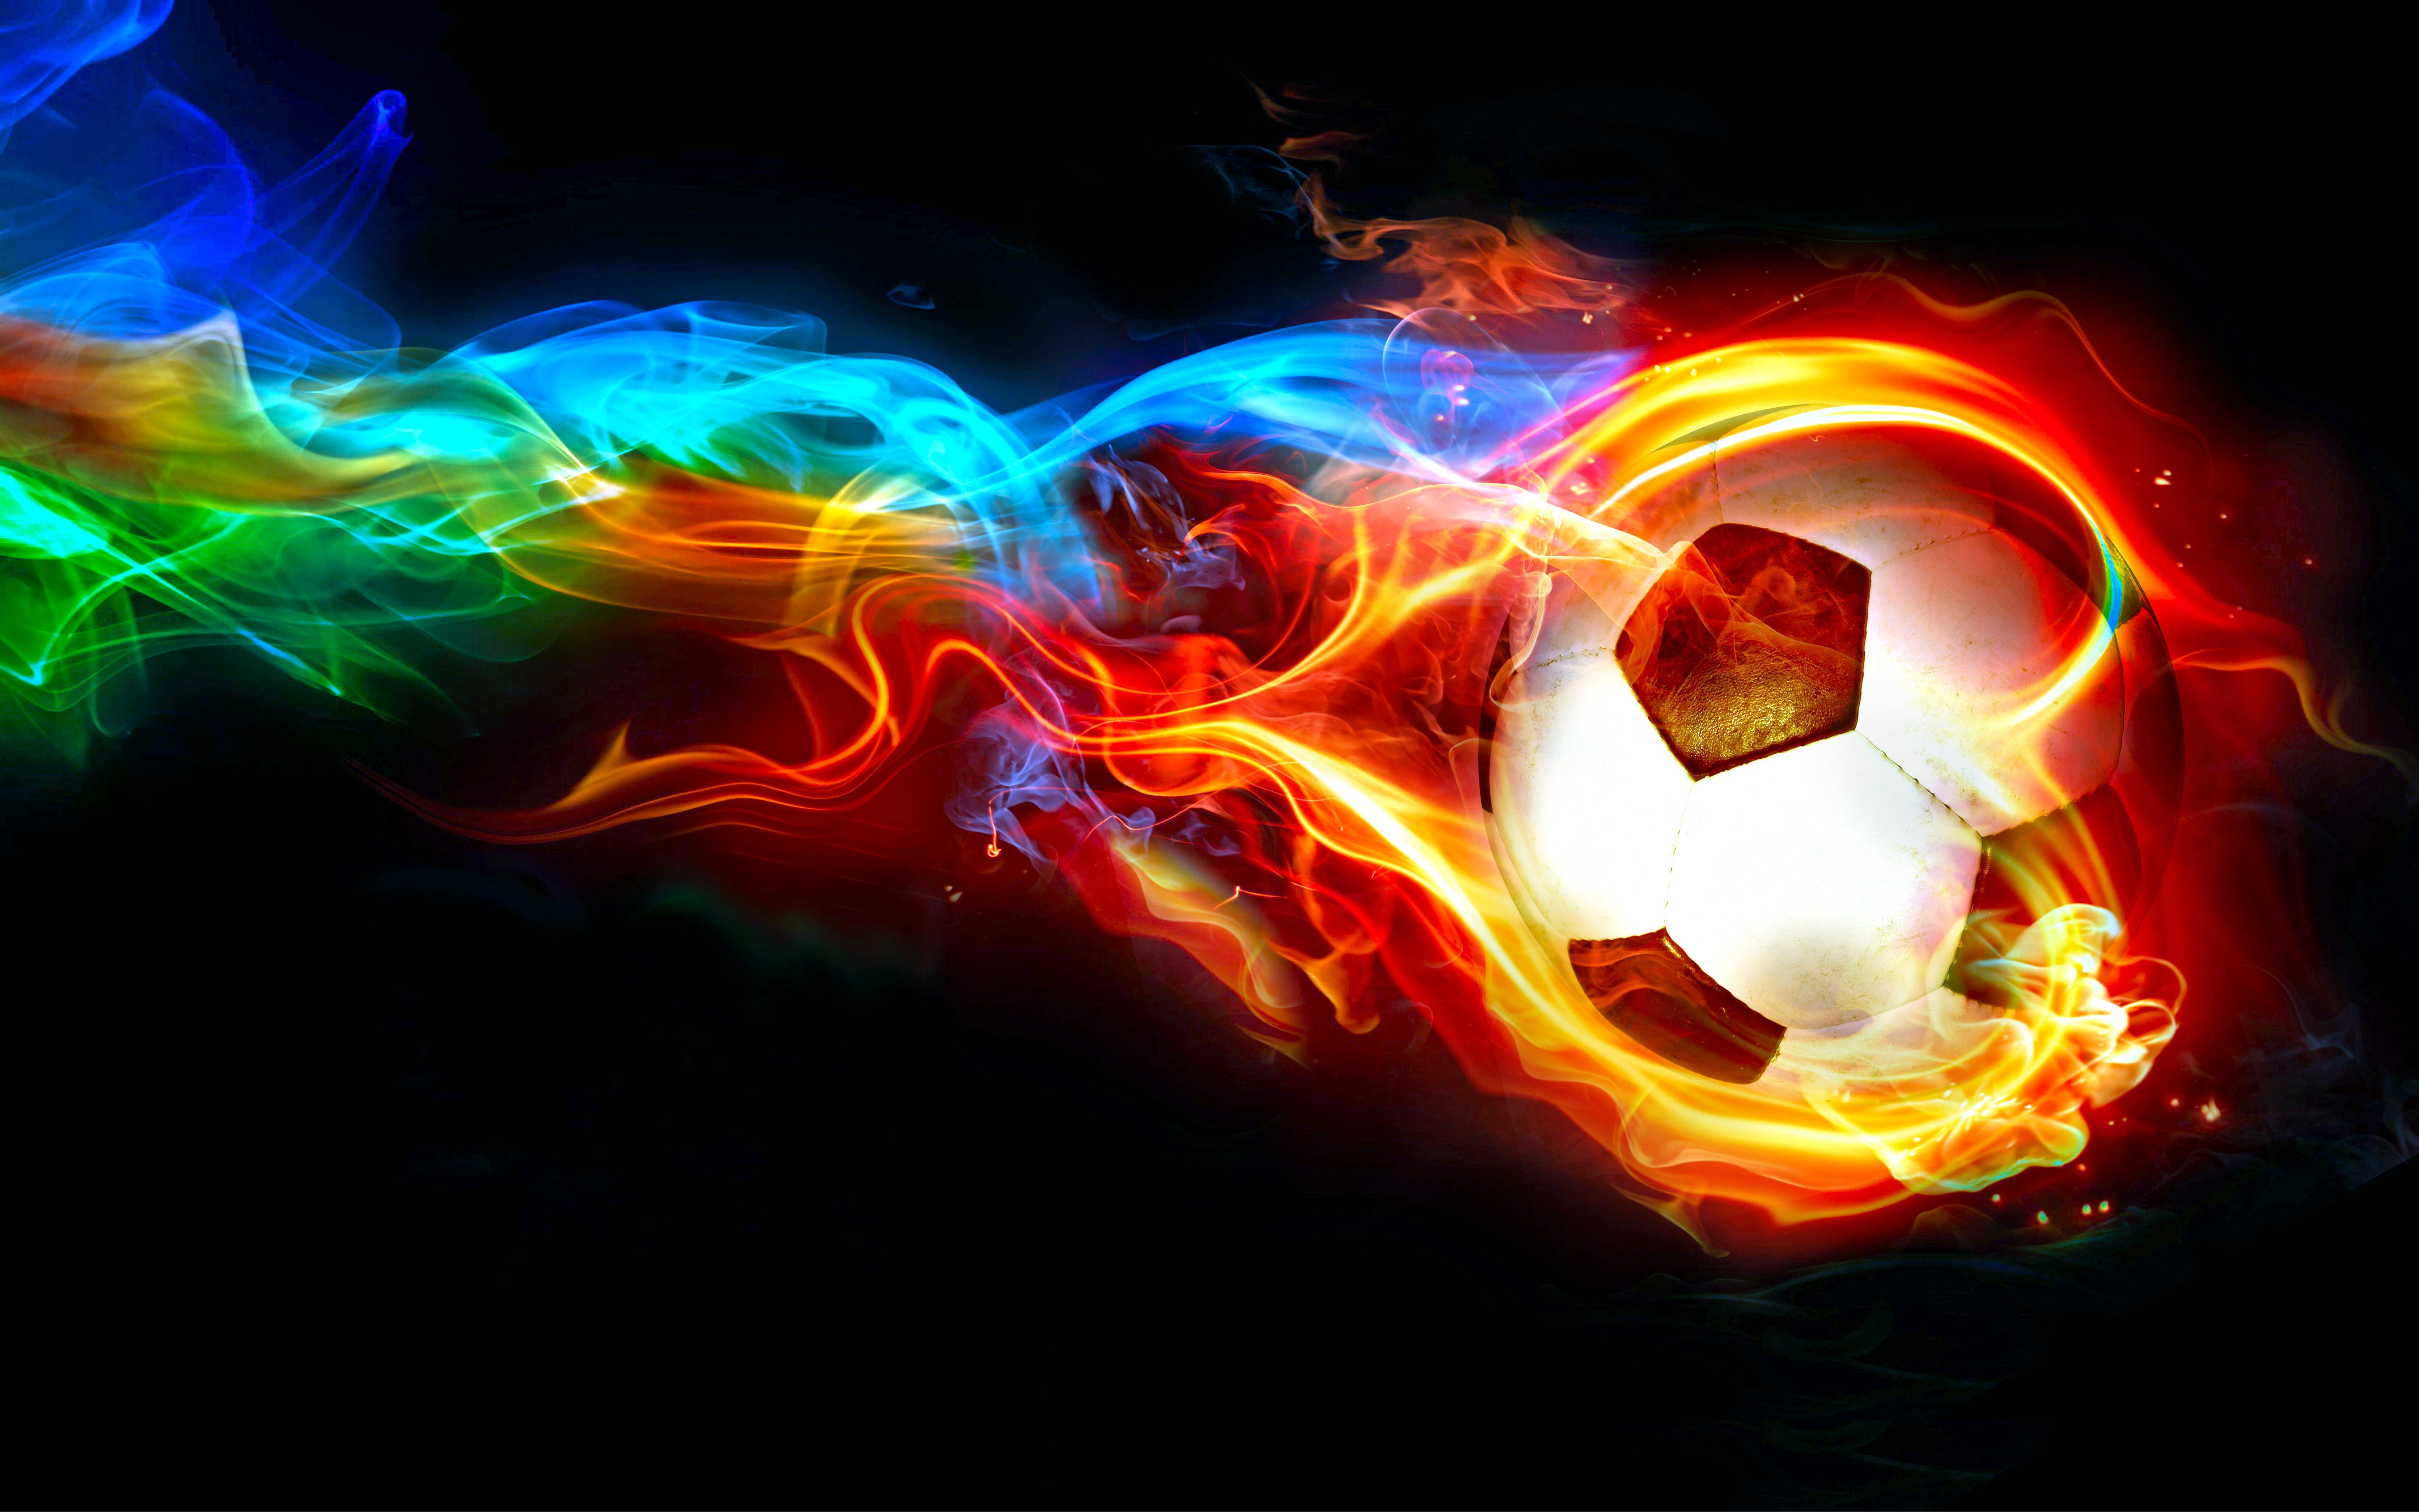 6686x4179 - Soccer Wallpapers 11